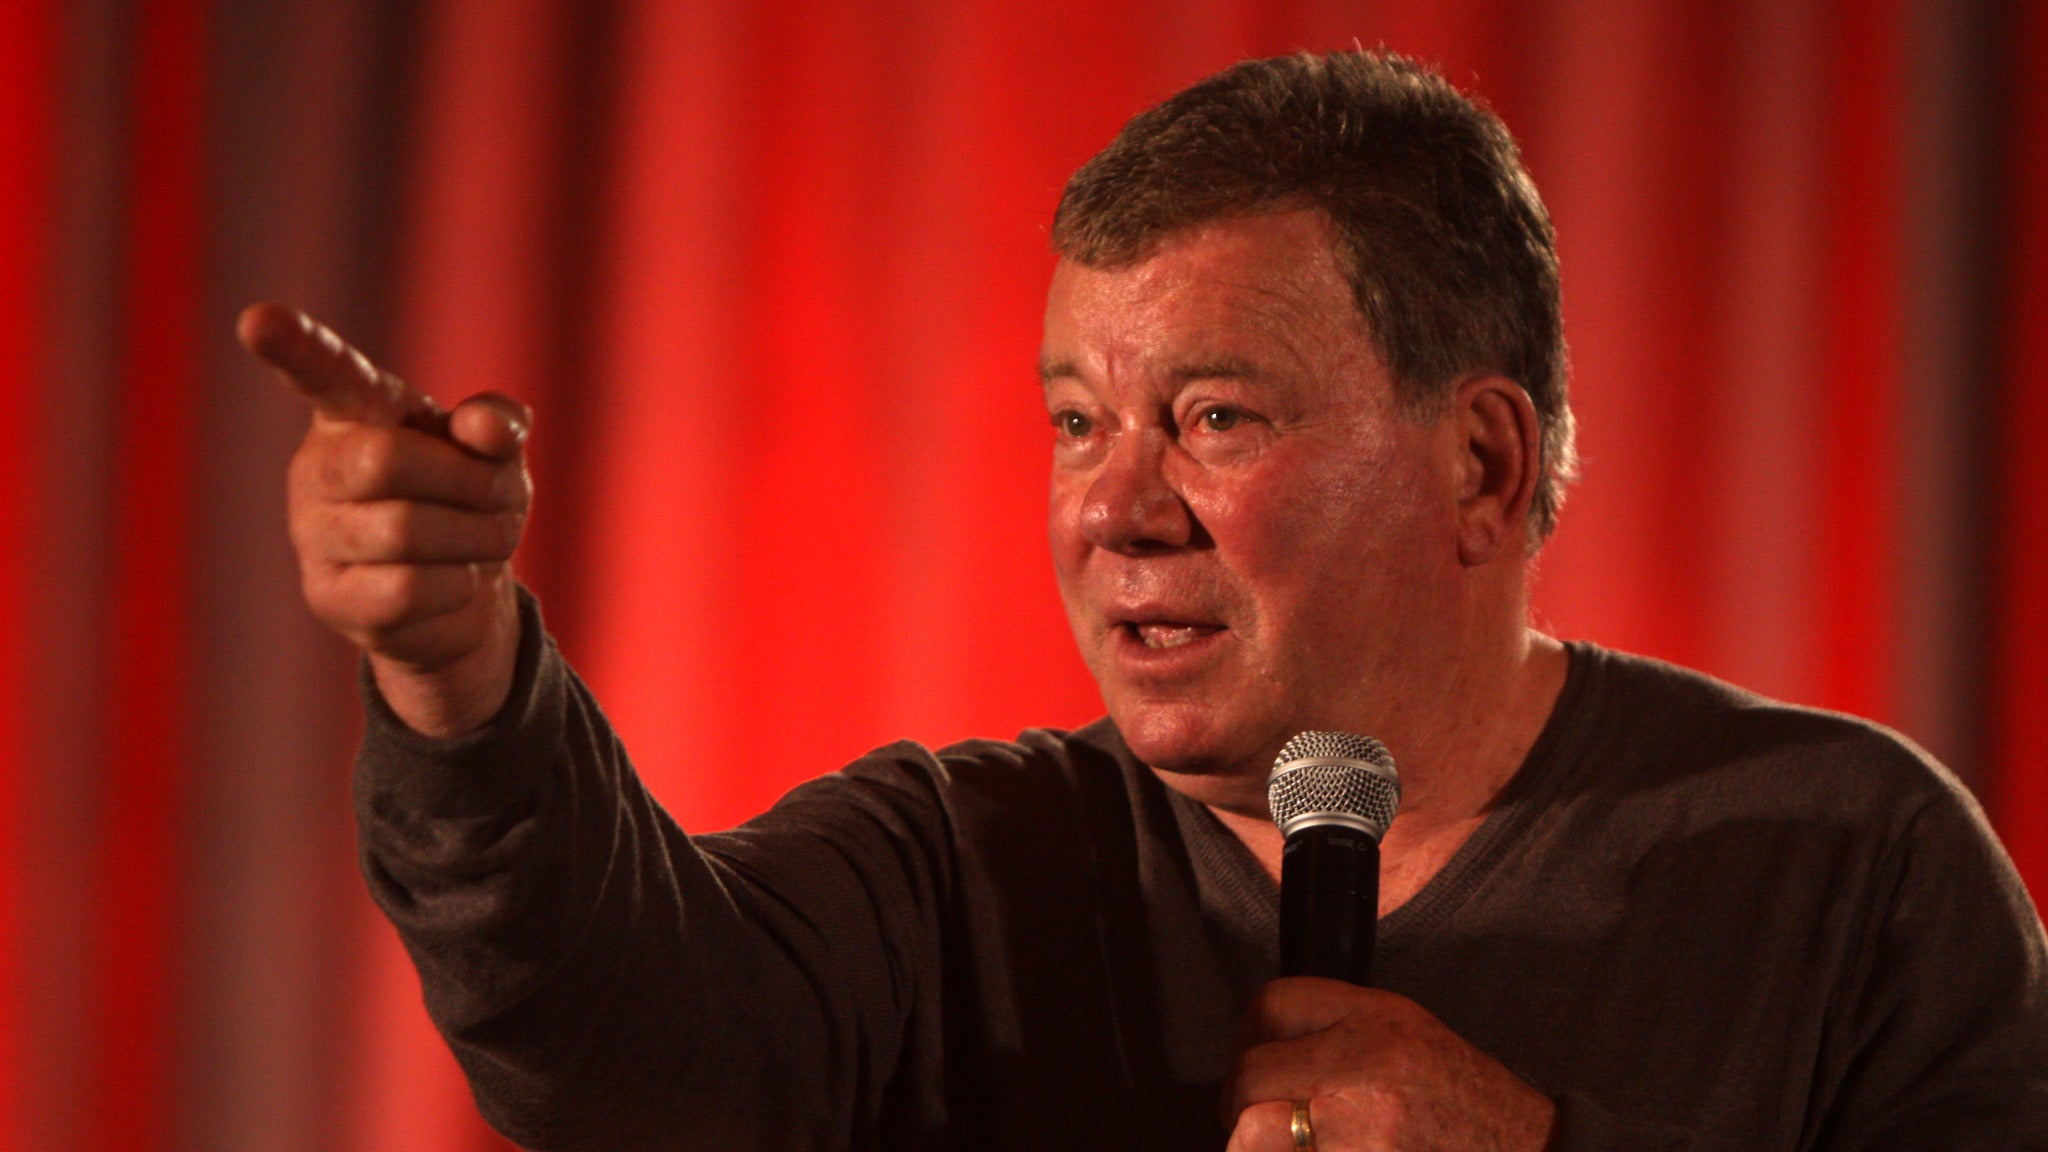 Shatner's World: We Just Live In It at HOYT SHERMAN PLACE